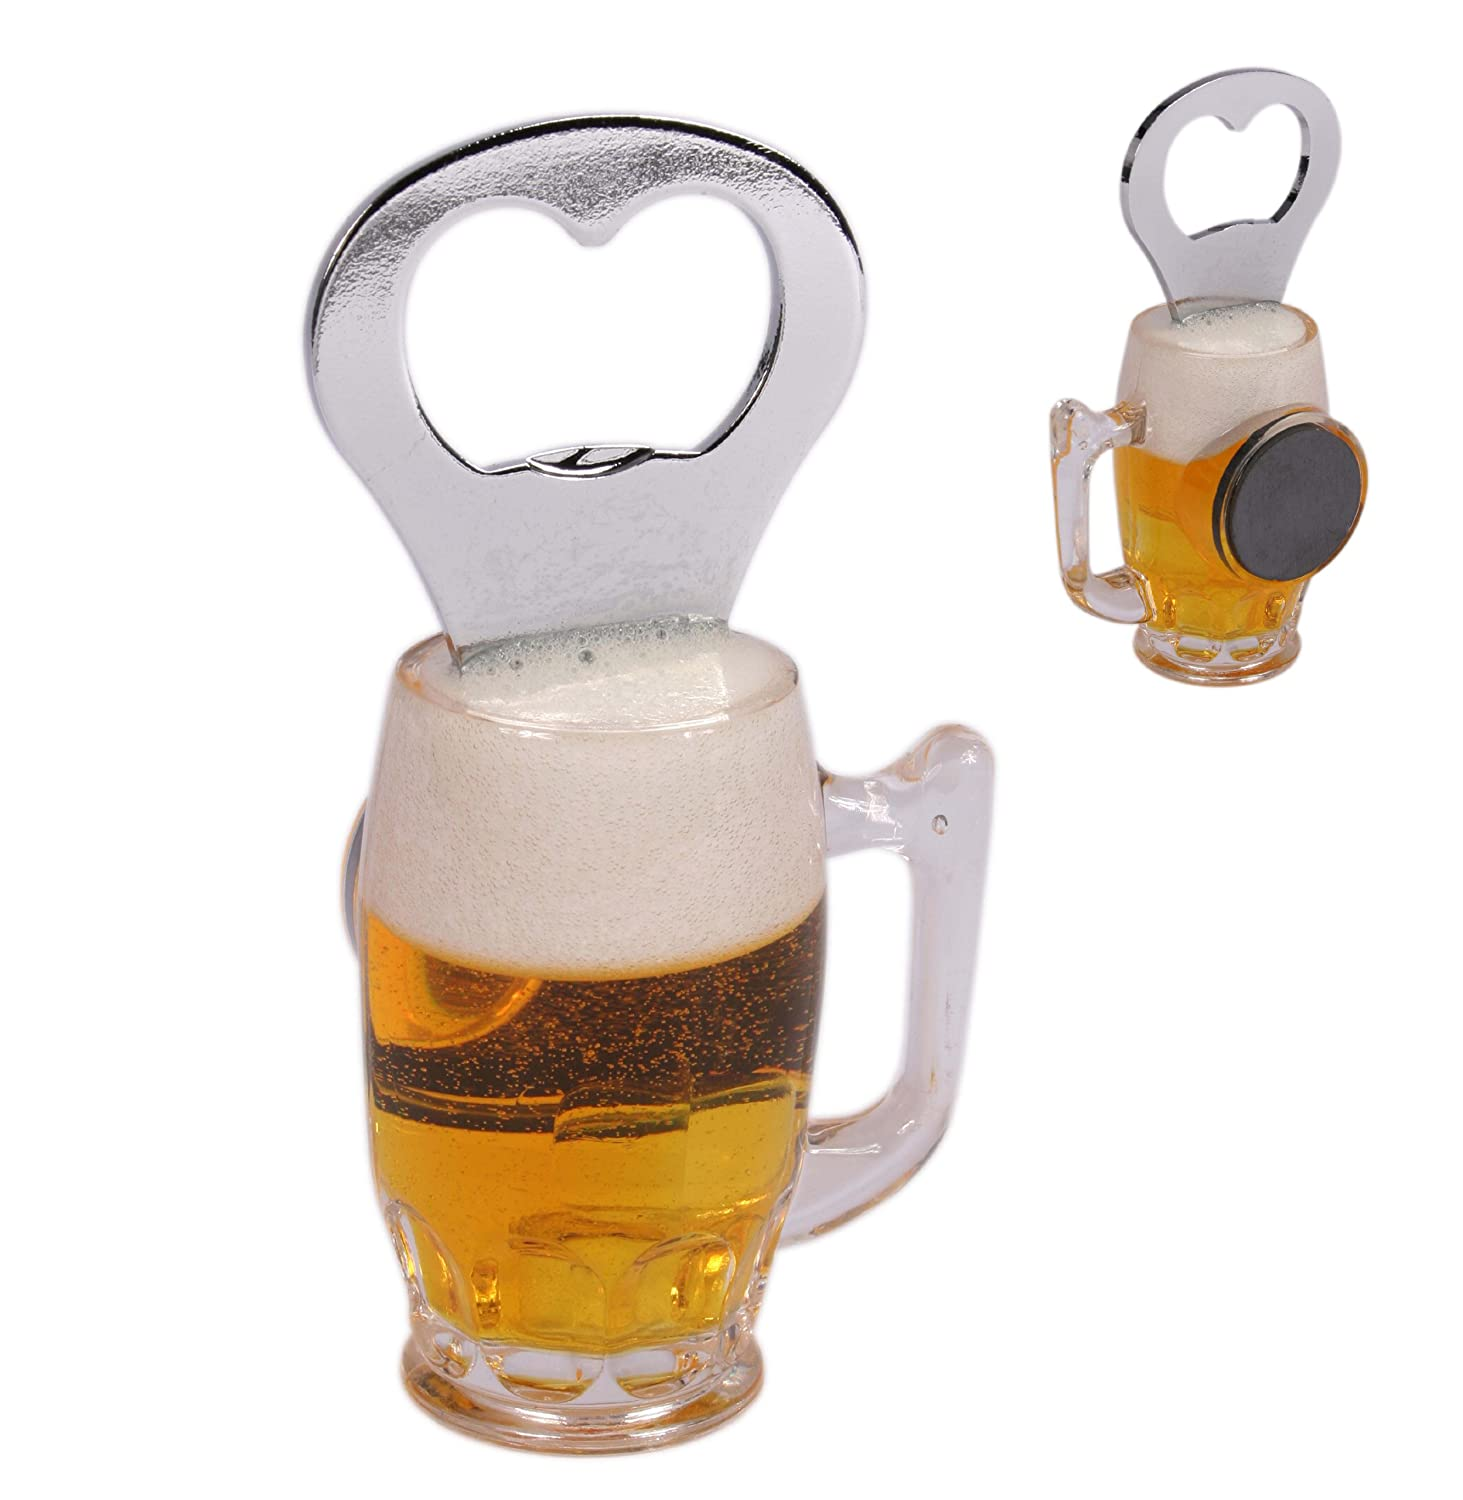 Novelty Beer Glass with Magnet Bottle Opener - Mens, Mans, Gents, His, Him Best, Top, Selling Fun, Novelty, Birthday, Christmas, Xmas Gift, Present Idea